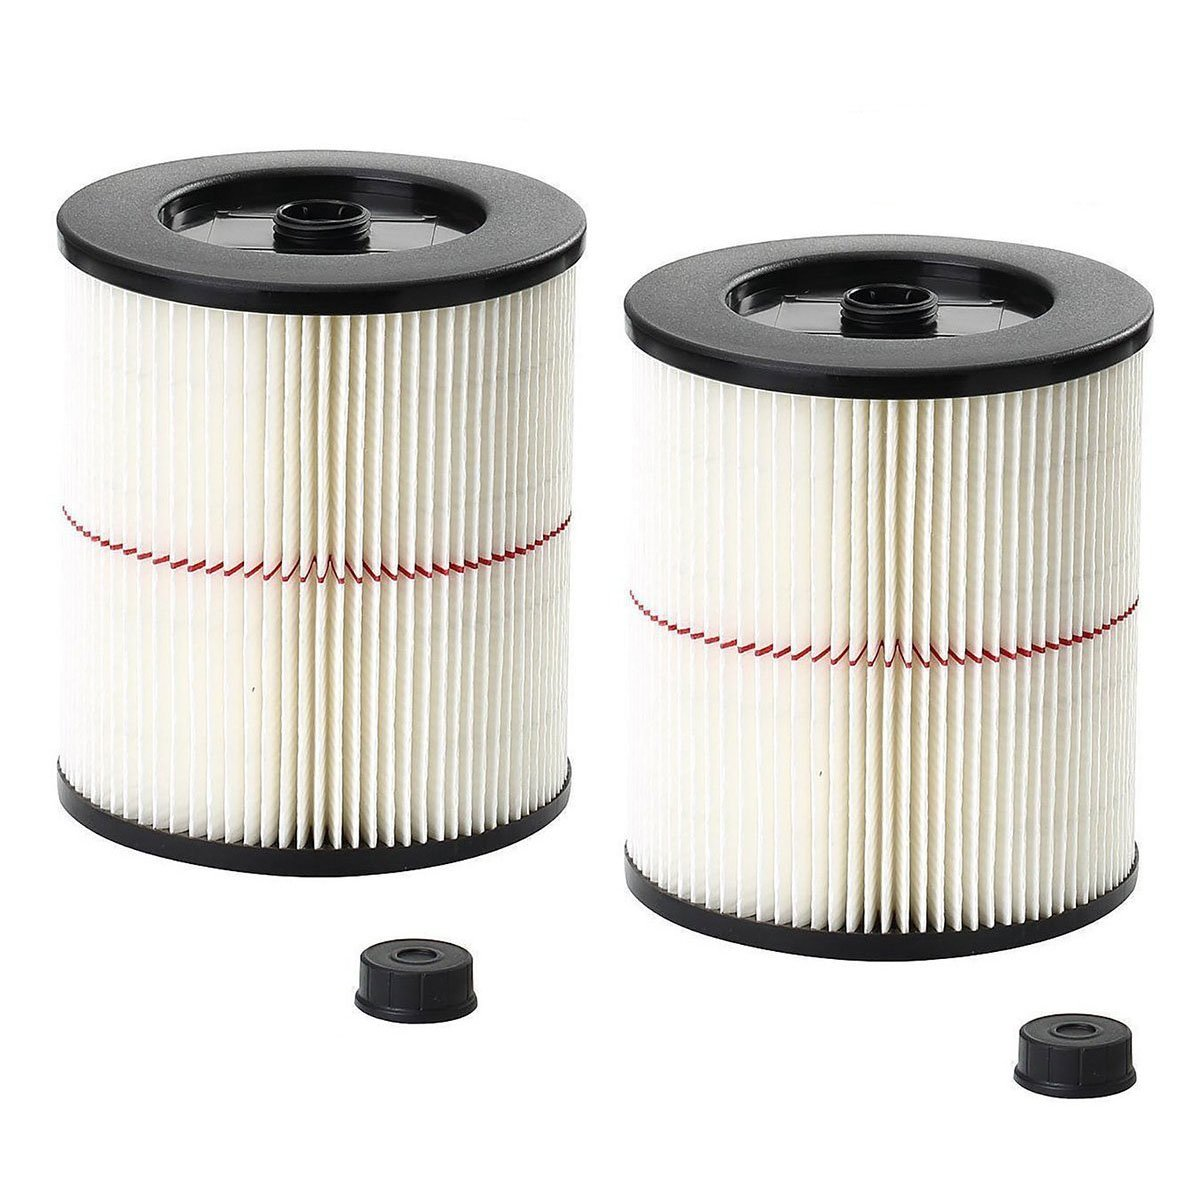 VacFit Filter for Craftsman Shop Vac 17816 9-17816 Replacement for Craftsman Wet Dry Vac Cartridge Filter 5 and Larger Gallon Vacuum Cleaner Attachment 2 Pack